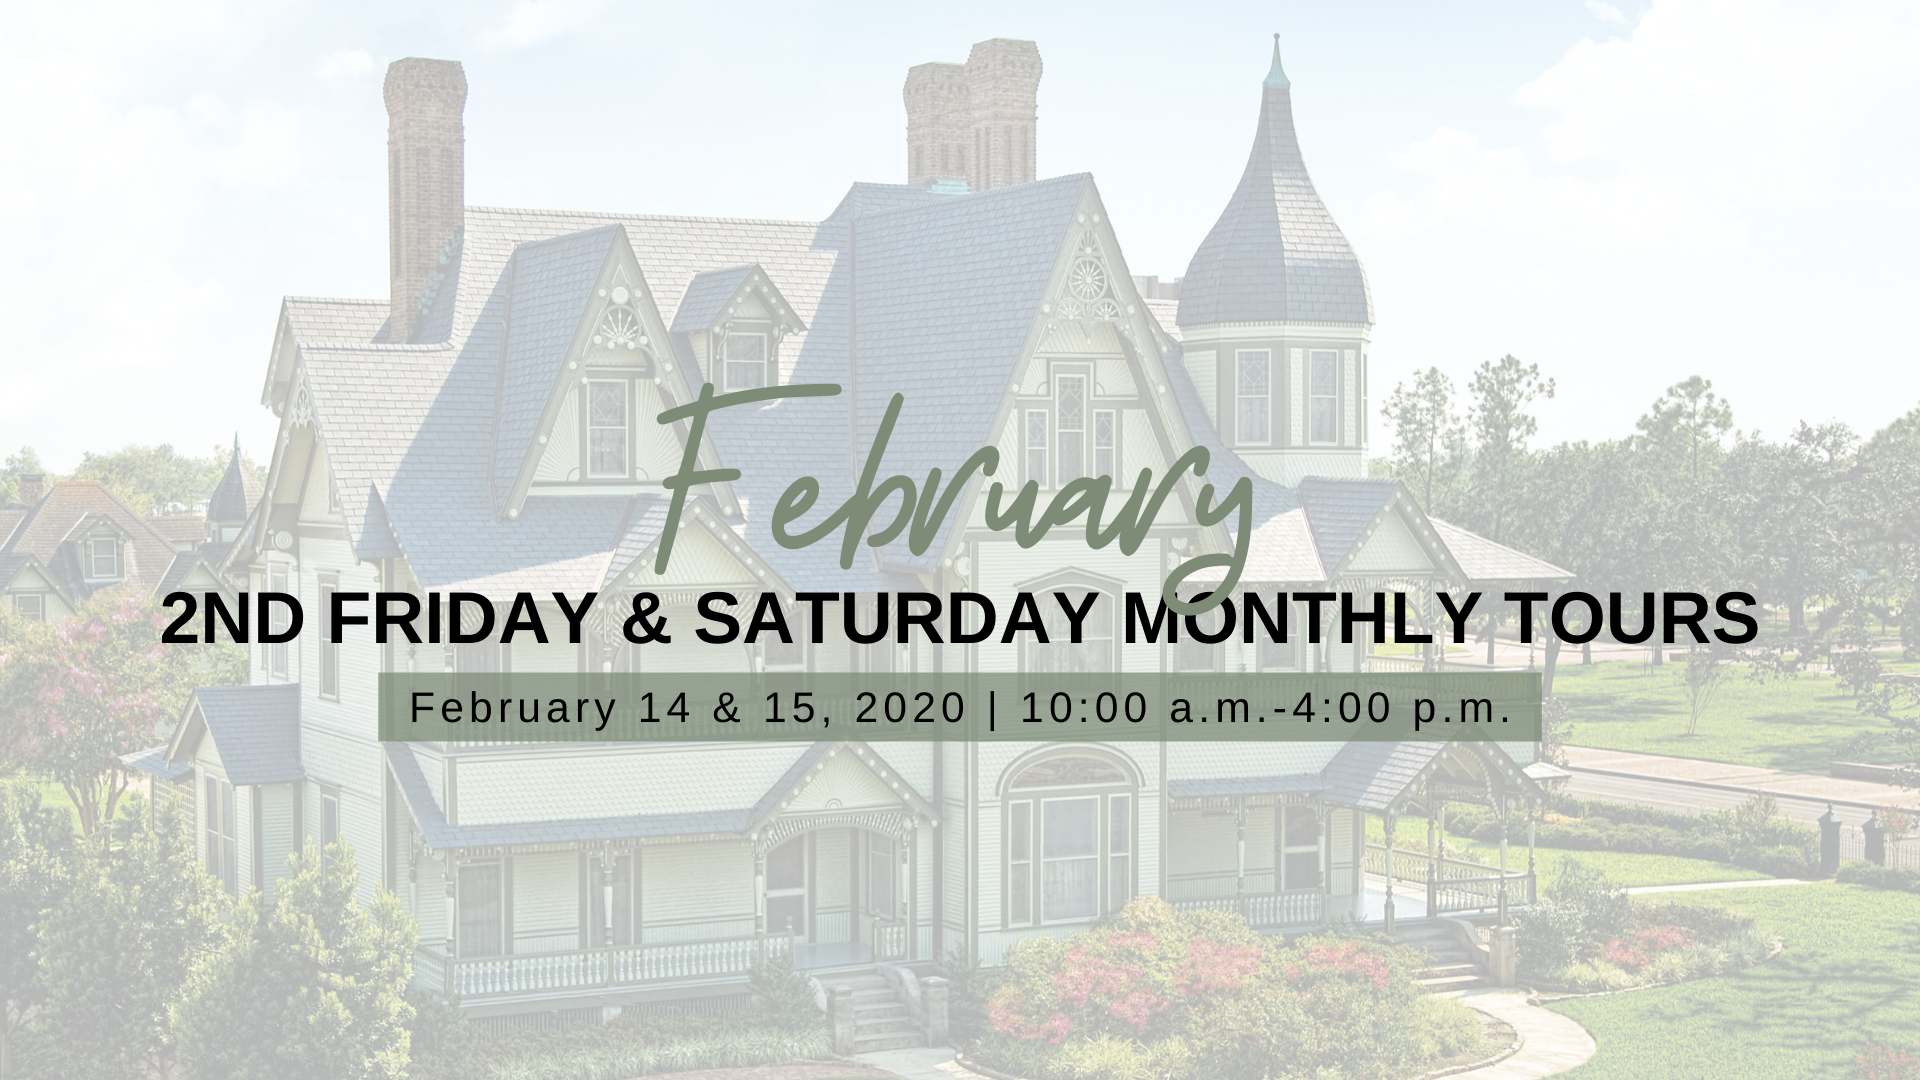 2nd Friday & Saturday Monthly Tours - February